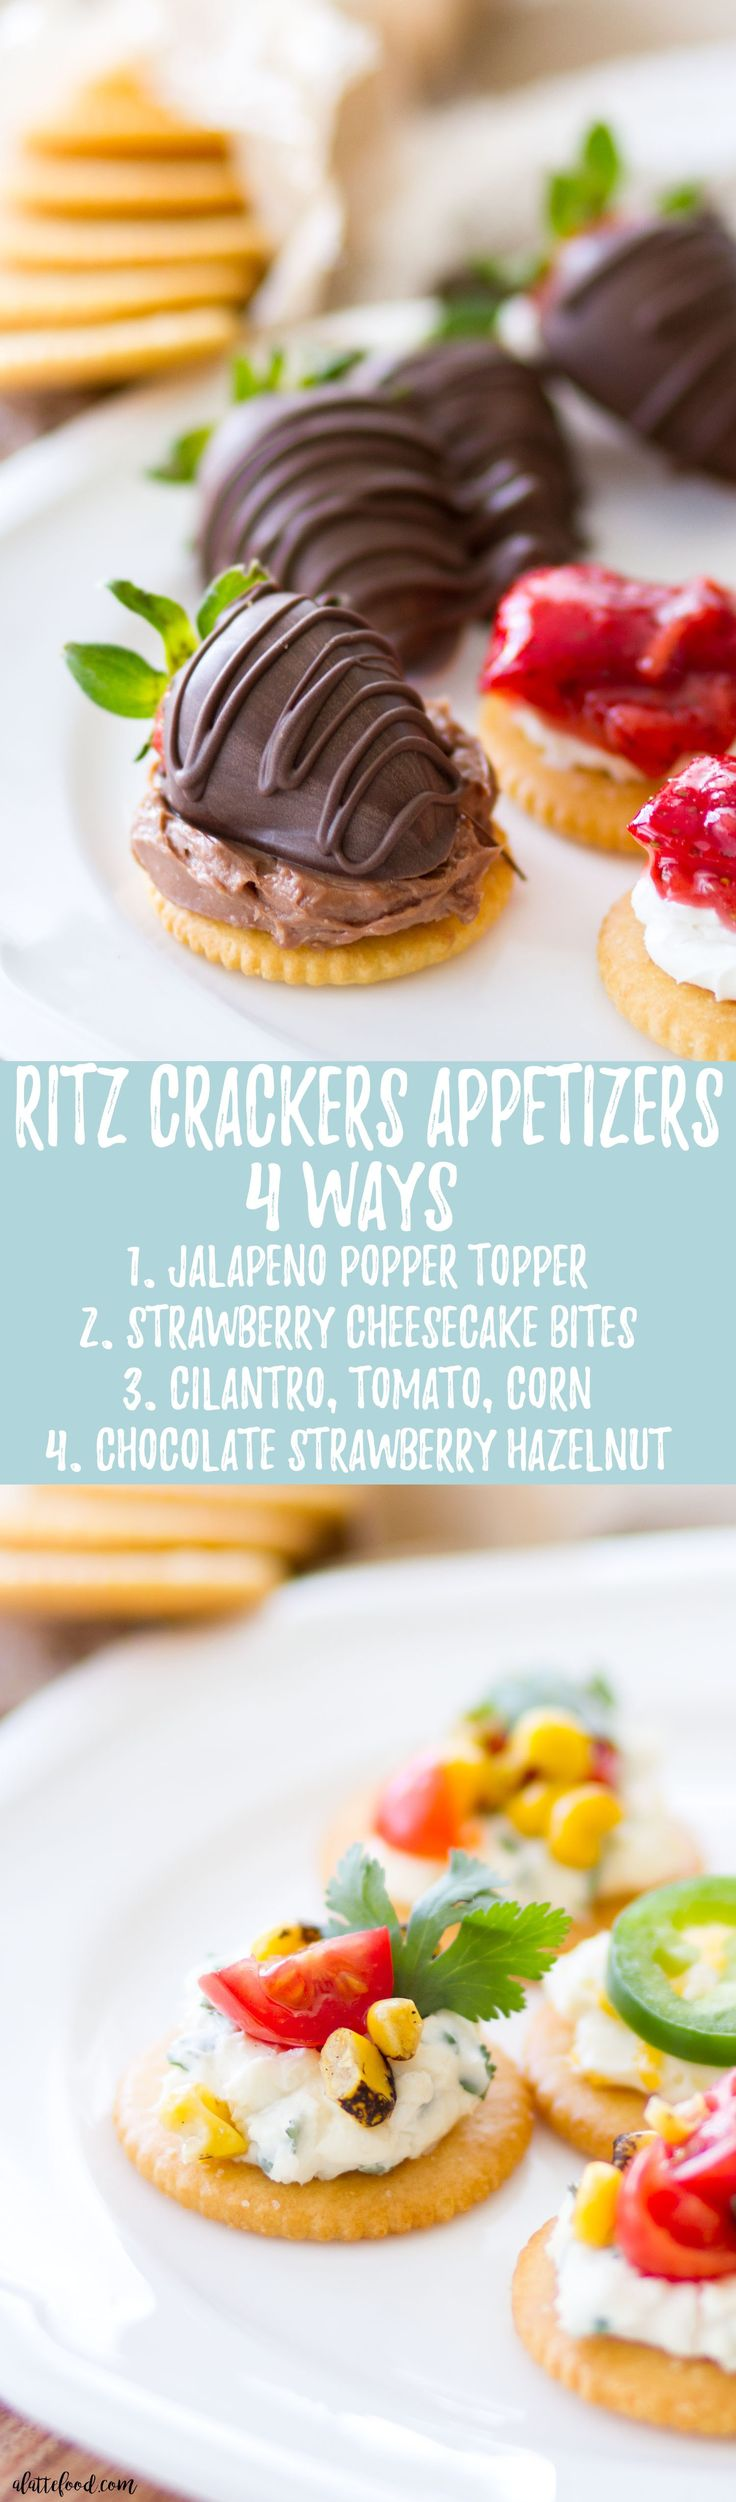 These easy RITZ Crackers appetizers are made 4 dif…